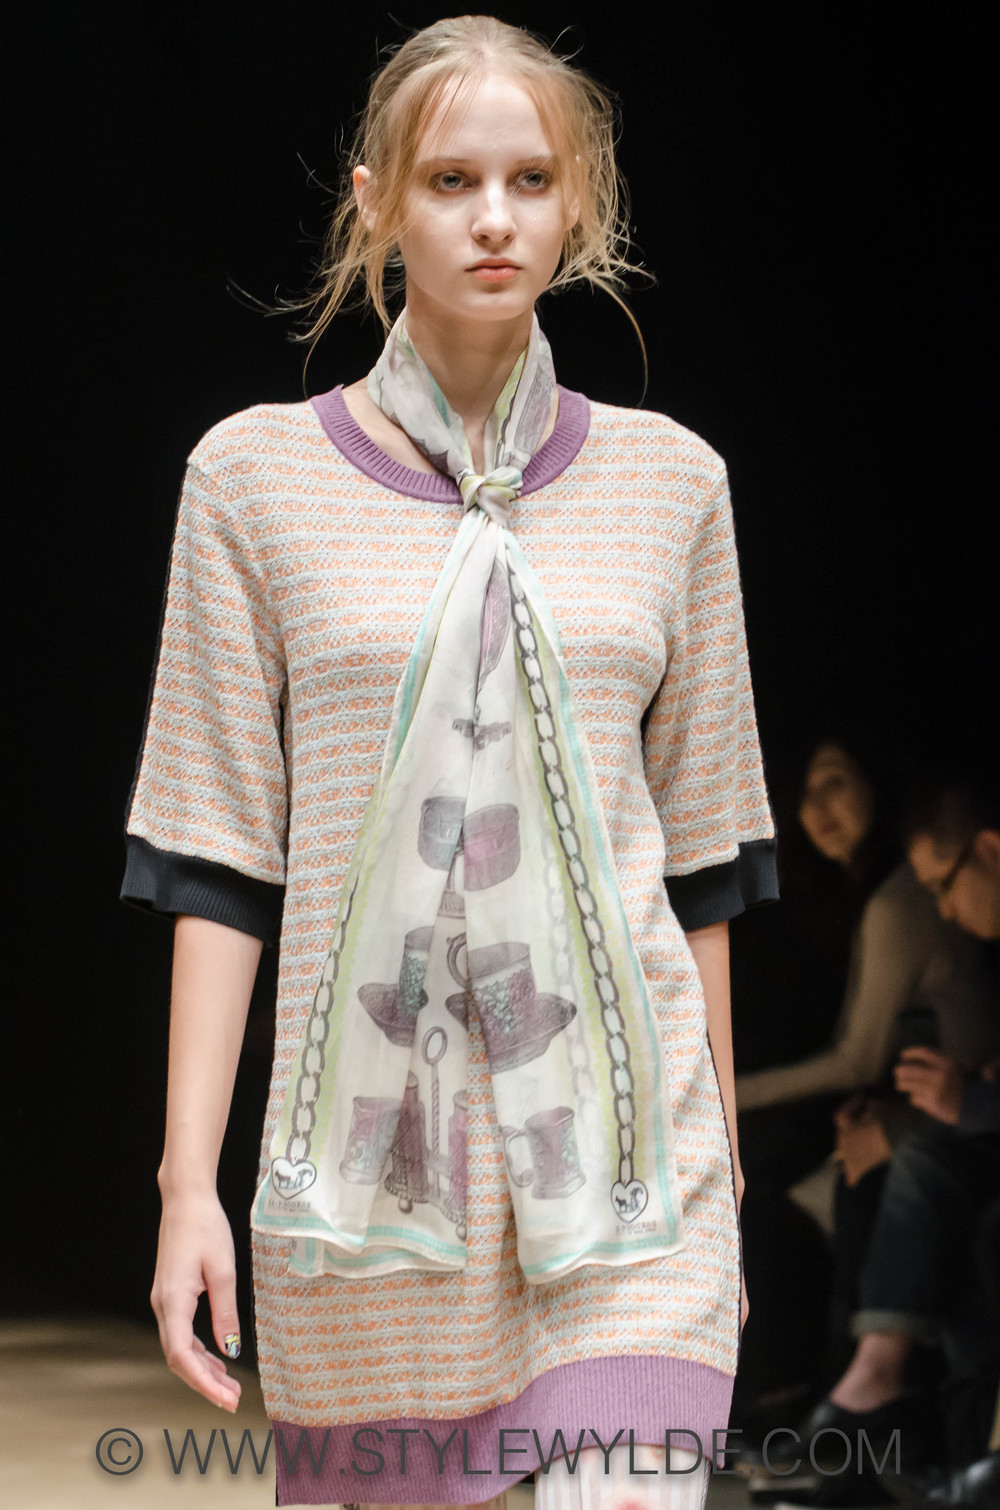 StyleWylde_InProcess_SS2014 (1 of 1)-8.jpg